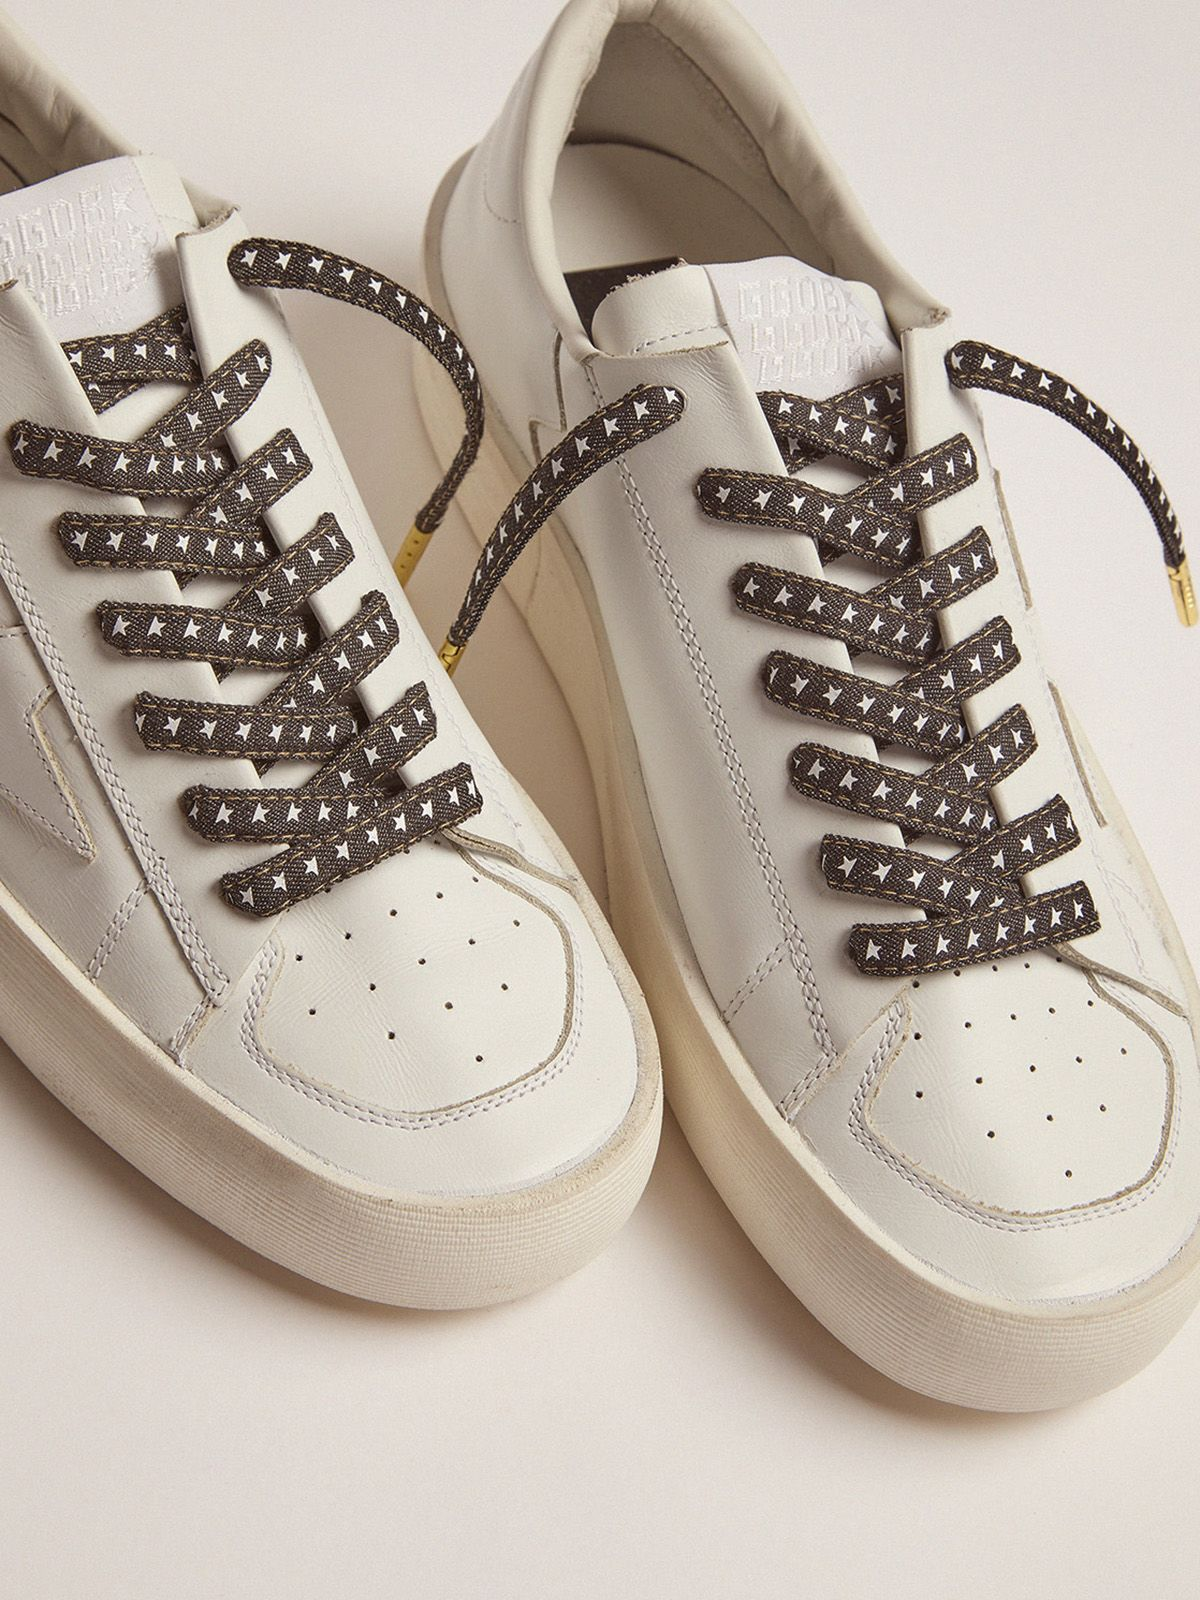 Golden Goose - Men's denim laces with white stars in